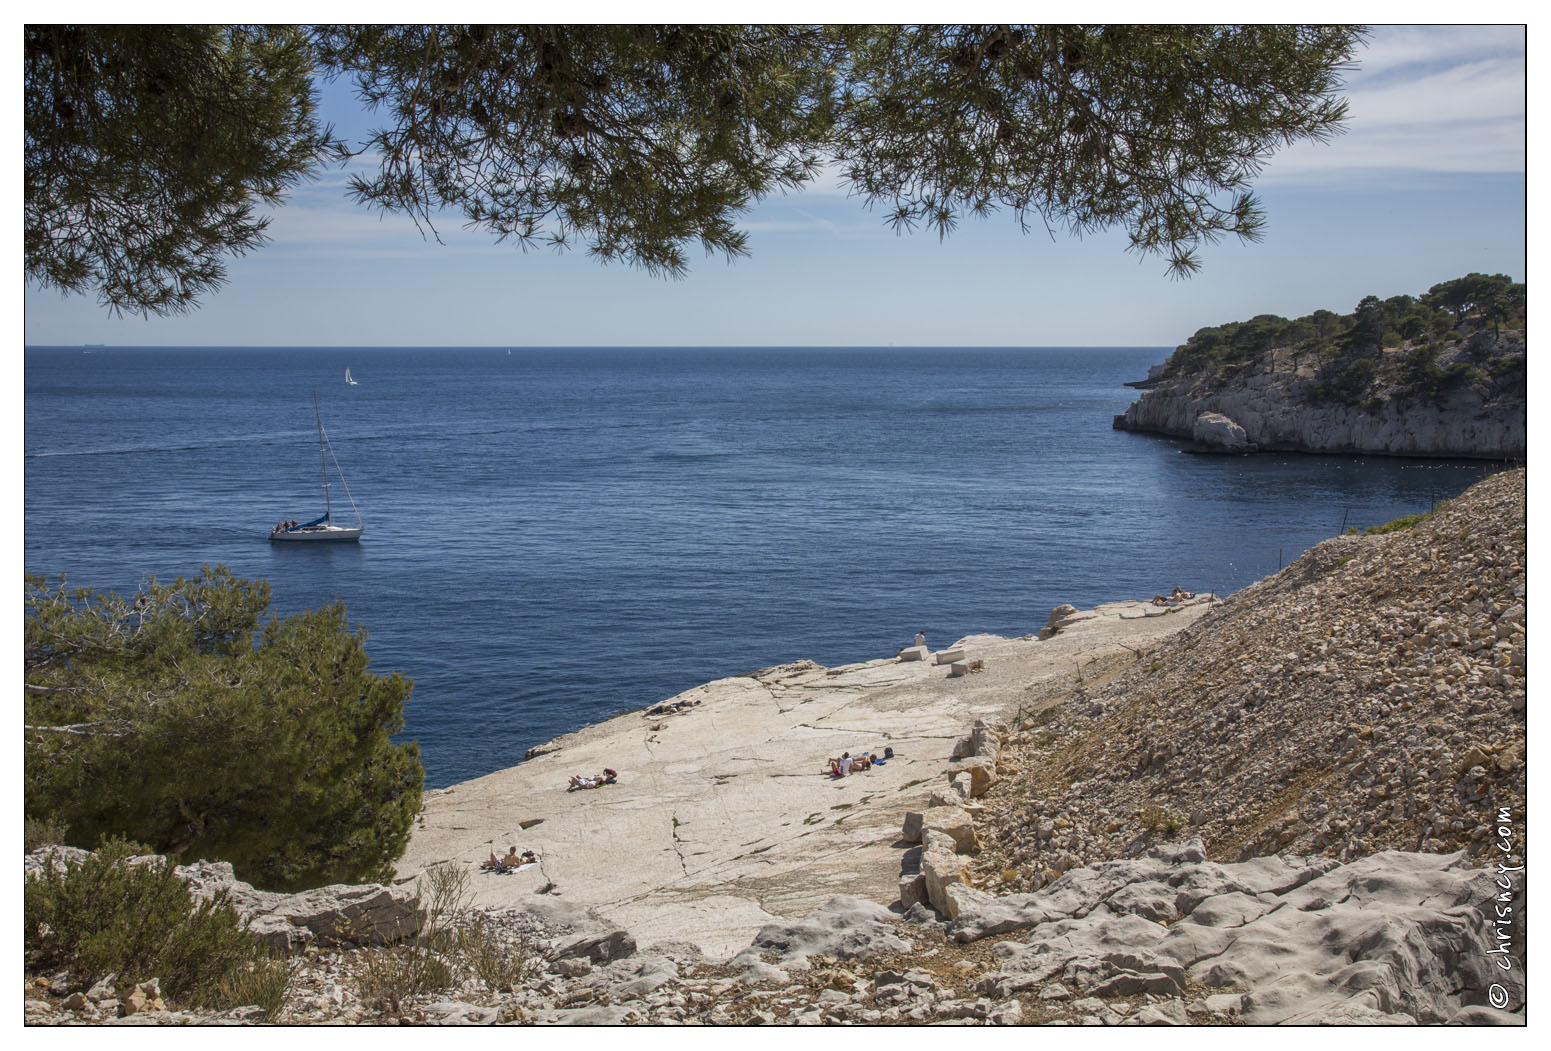 20140516-66_0714-Cassis_Cap_Cable_Cap_Canaille.jpg